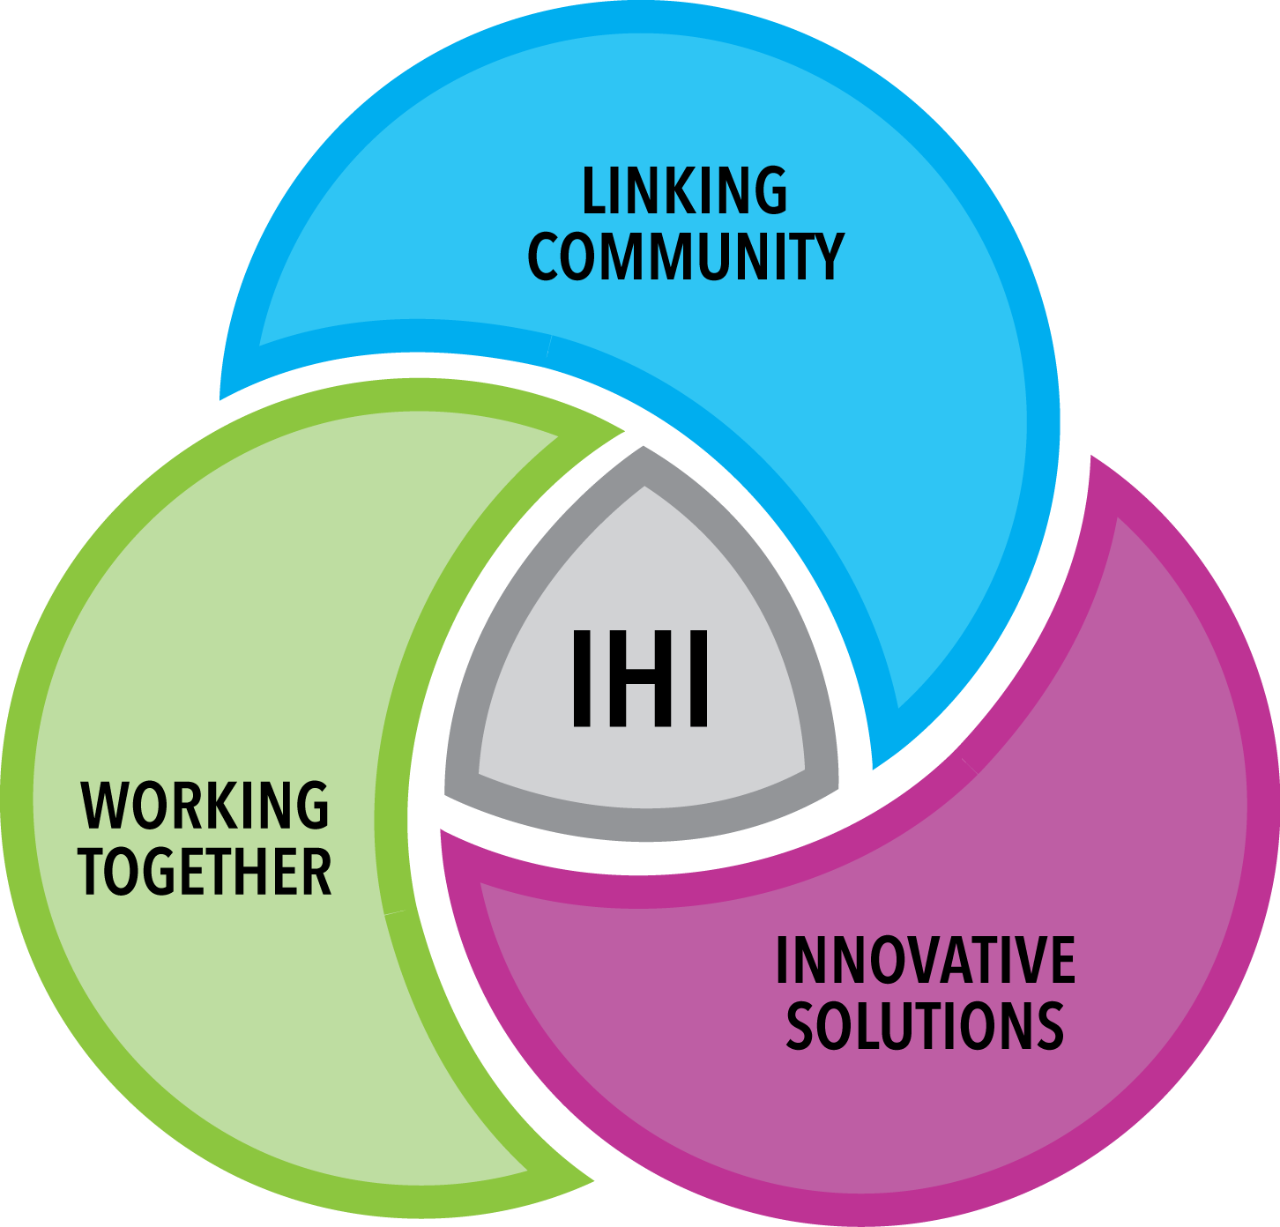 Venn diagram with IHI in the middle surrounded by linking community, working together, and innovative solutions.